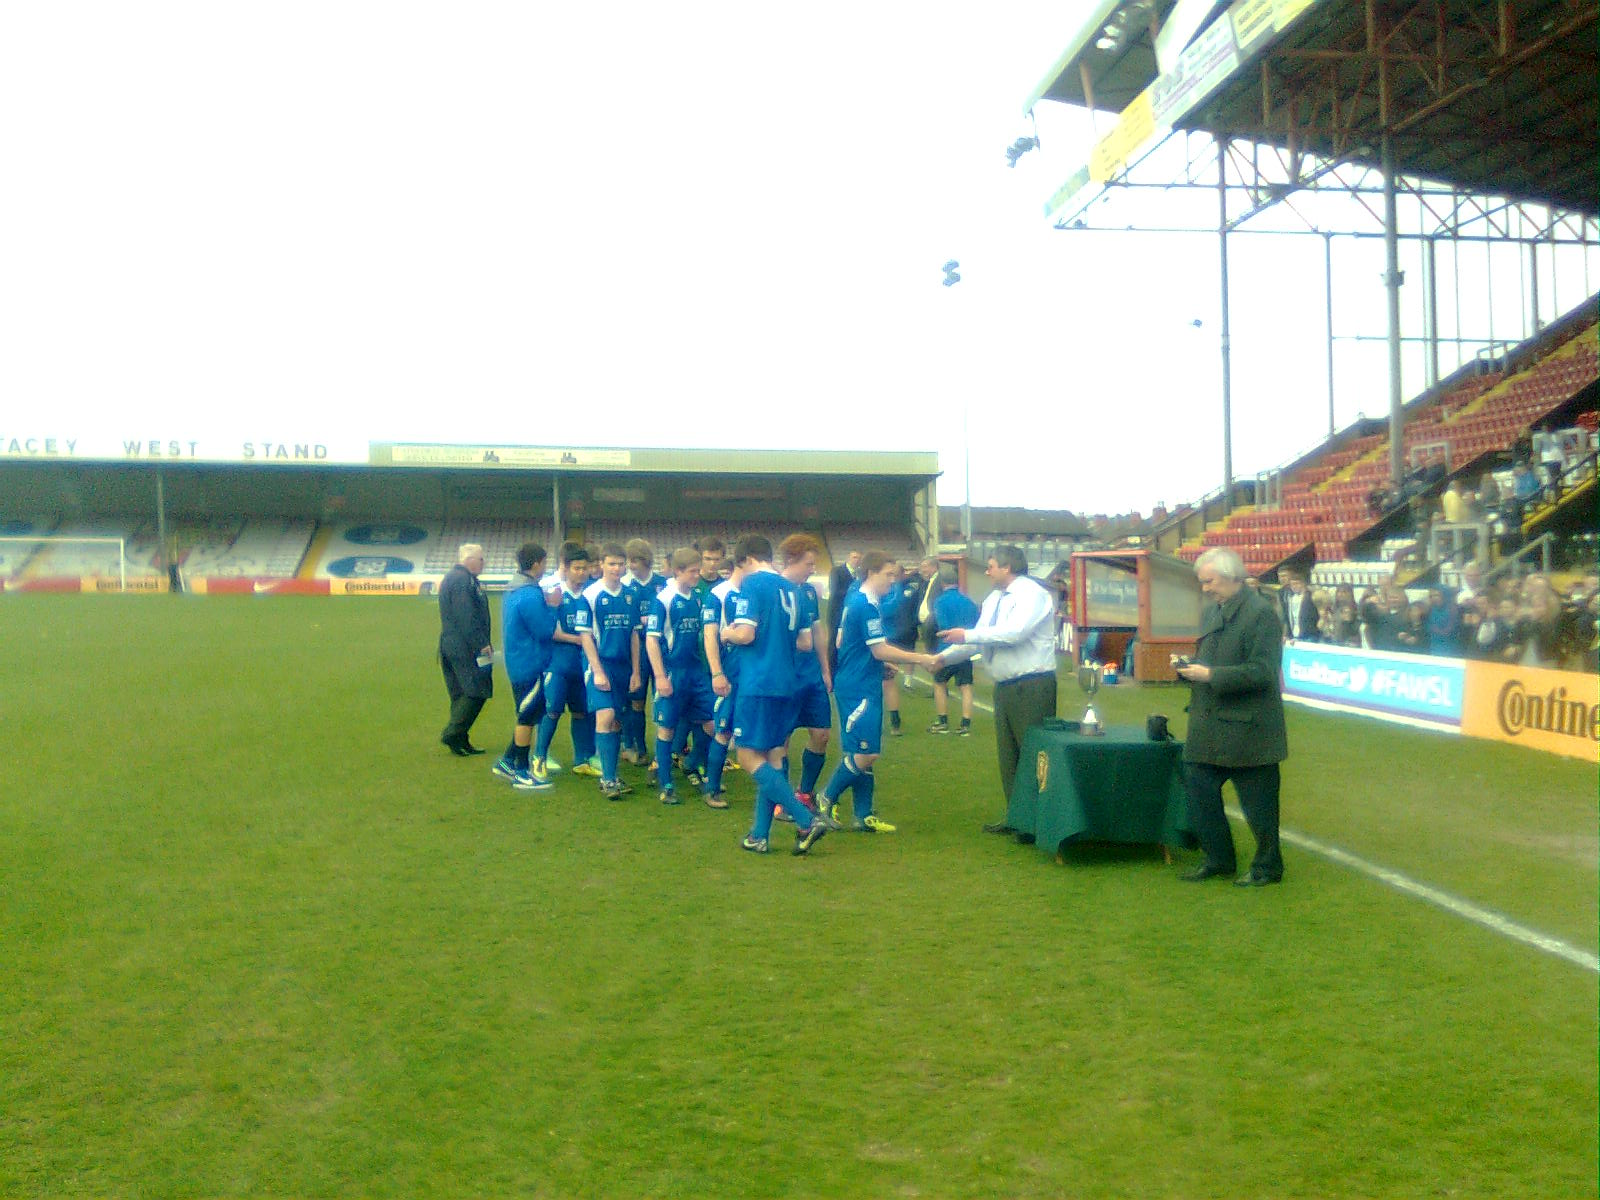 Gainsborough Captain receives the County Cup Trophy